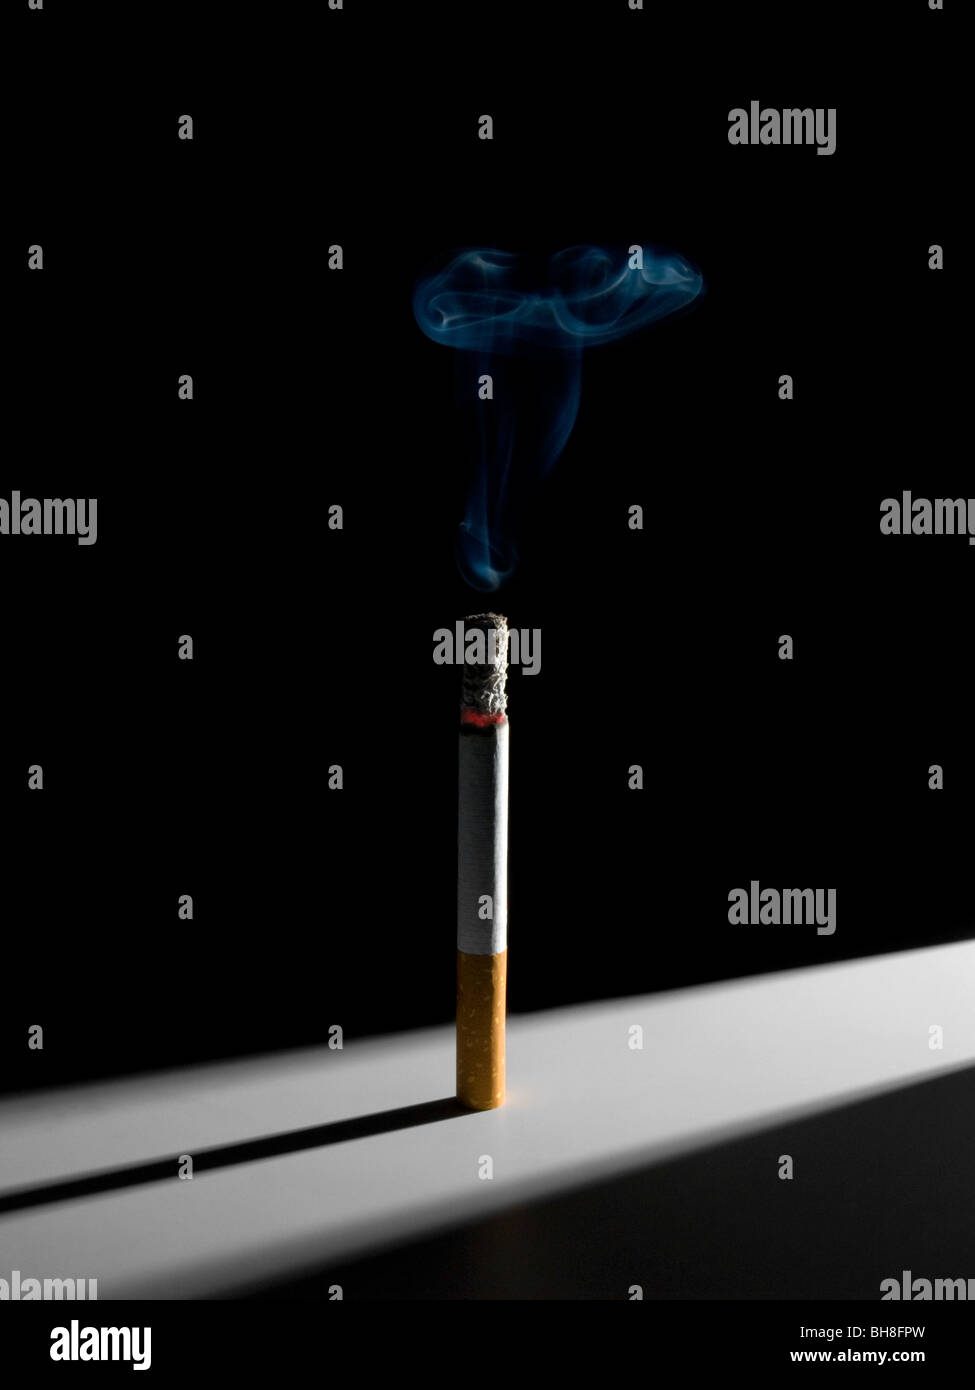 A single smoking cigarette standing in a narrow corridor of light. A conceptual image about the smoking habit. - Stock Image